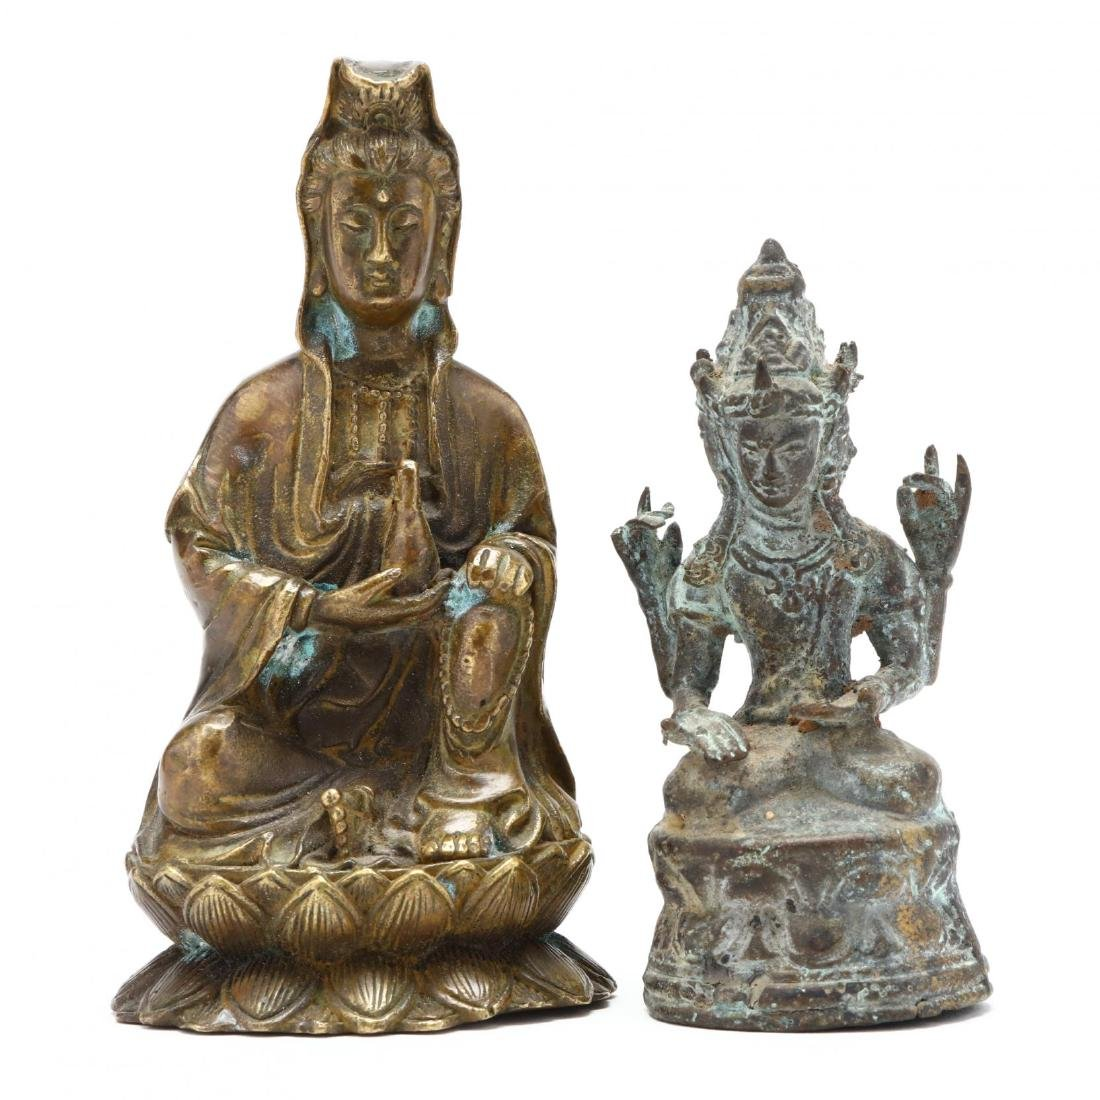 A Three Headed Indian Bronze Sculpture and Bronze